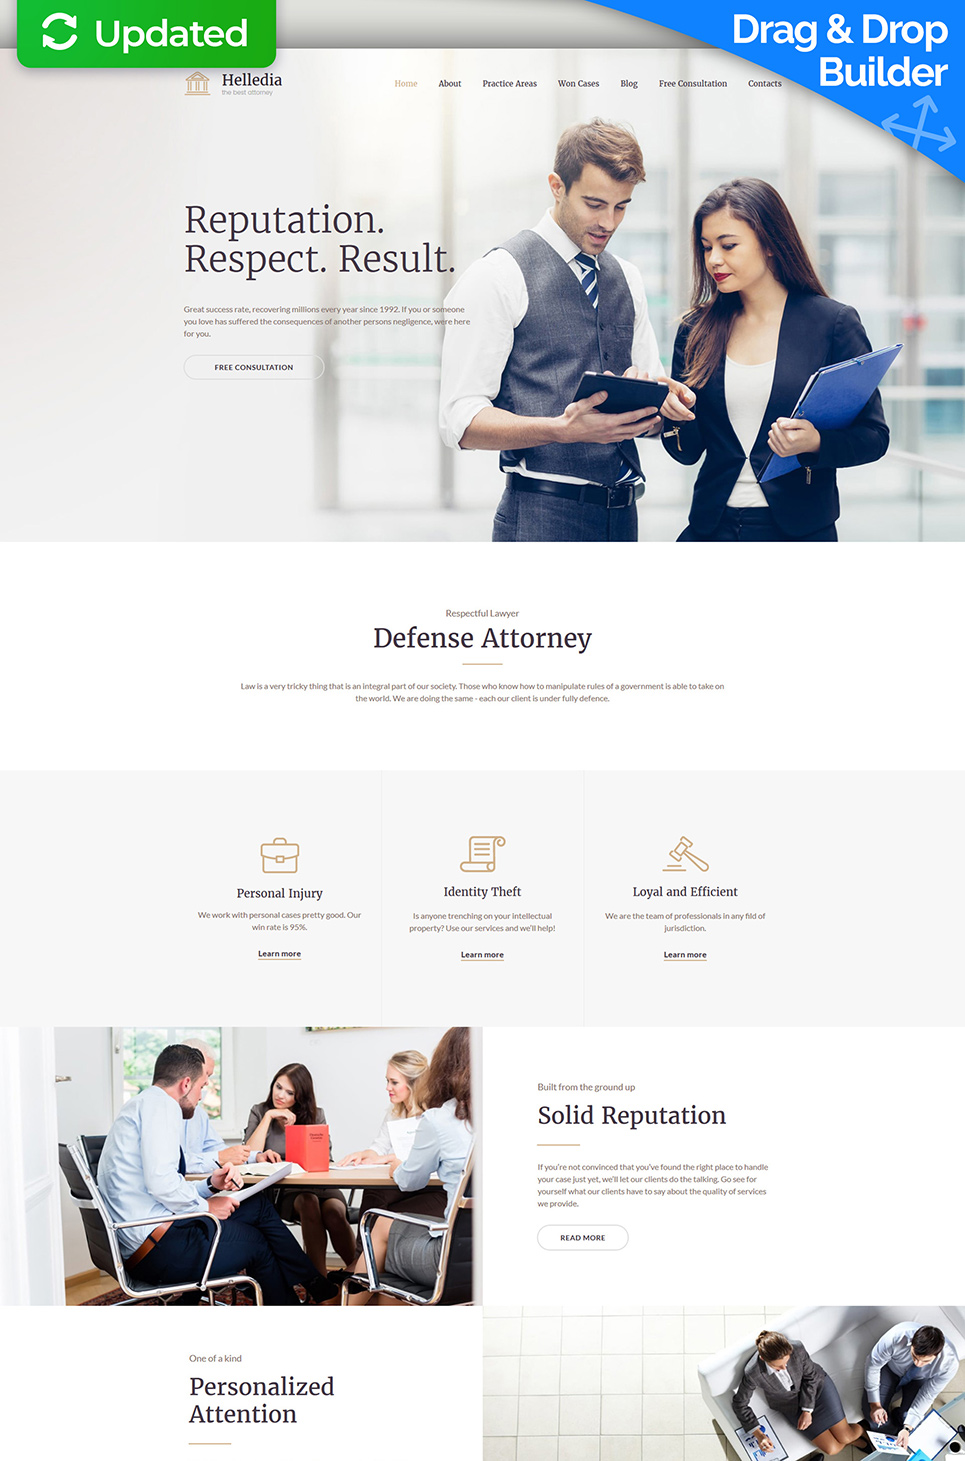 Lawyer Premium Website Design - image